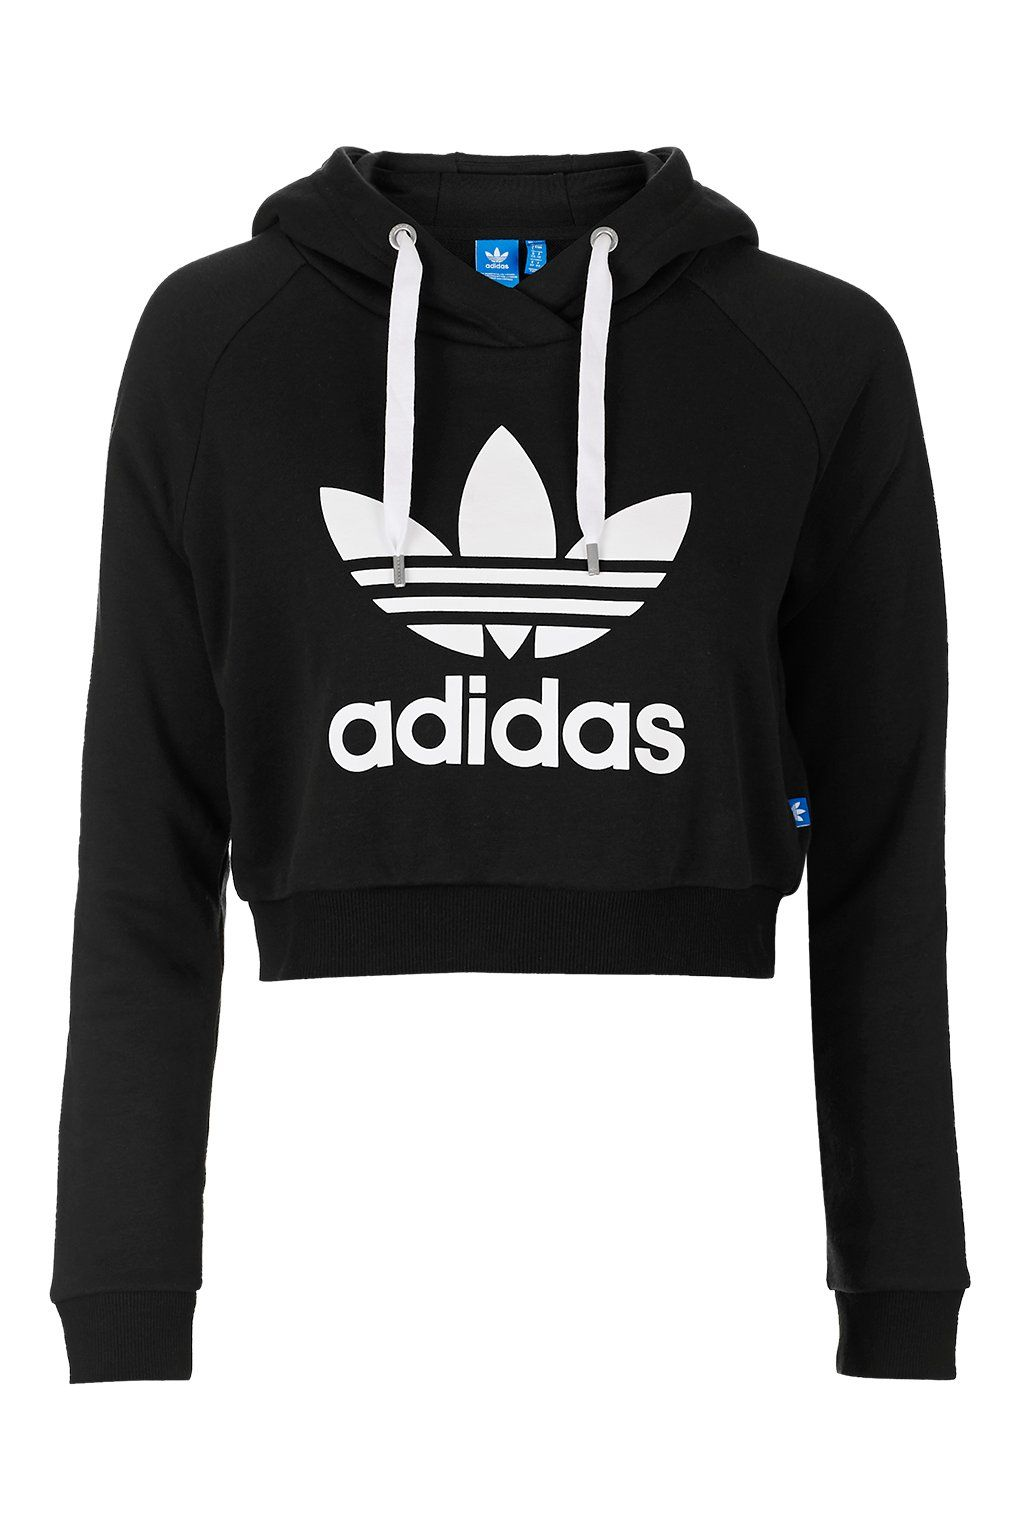 adidas jumper cropped hoodie by adidas originals - topshop BMODUAQ